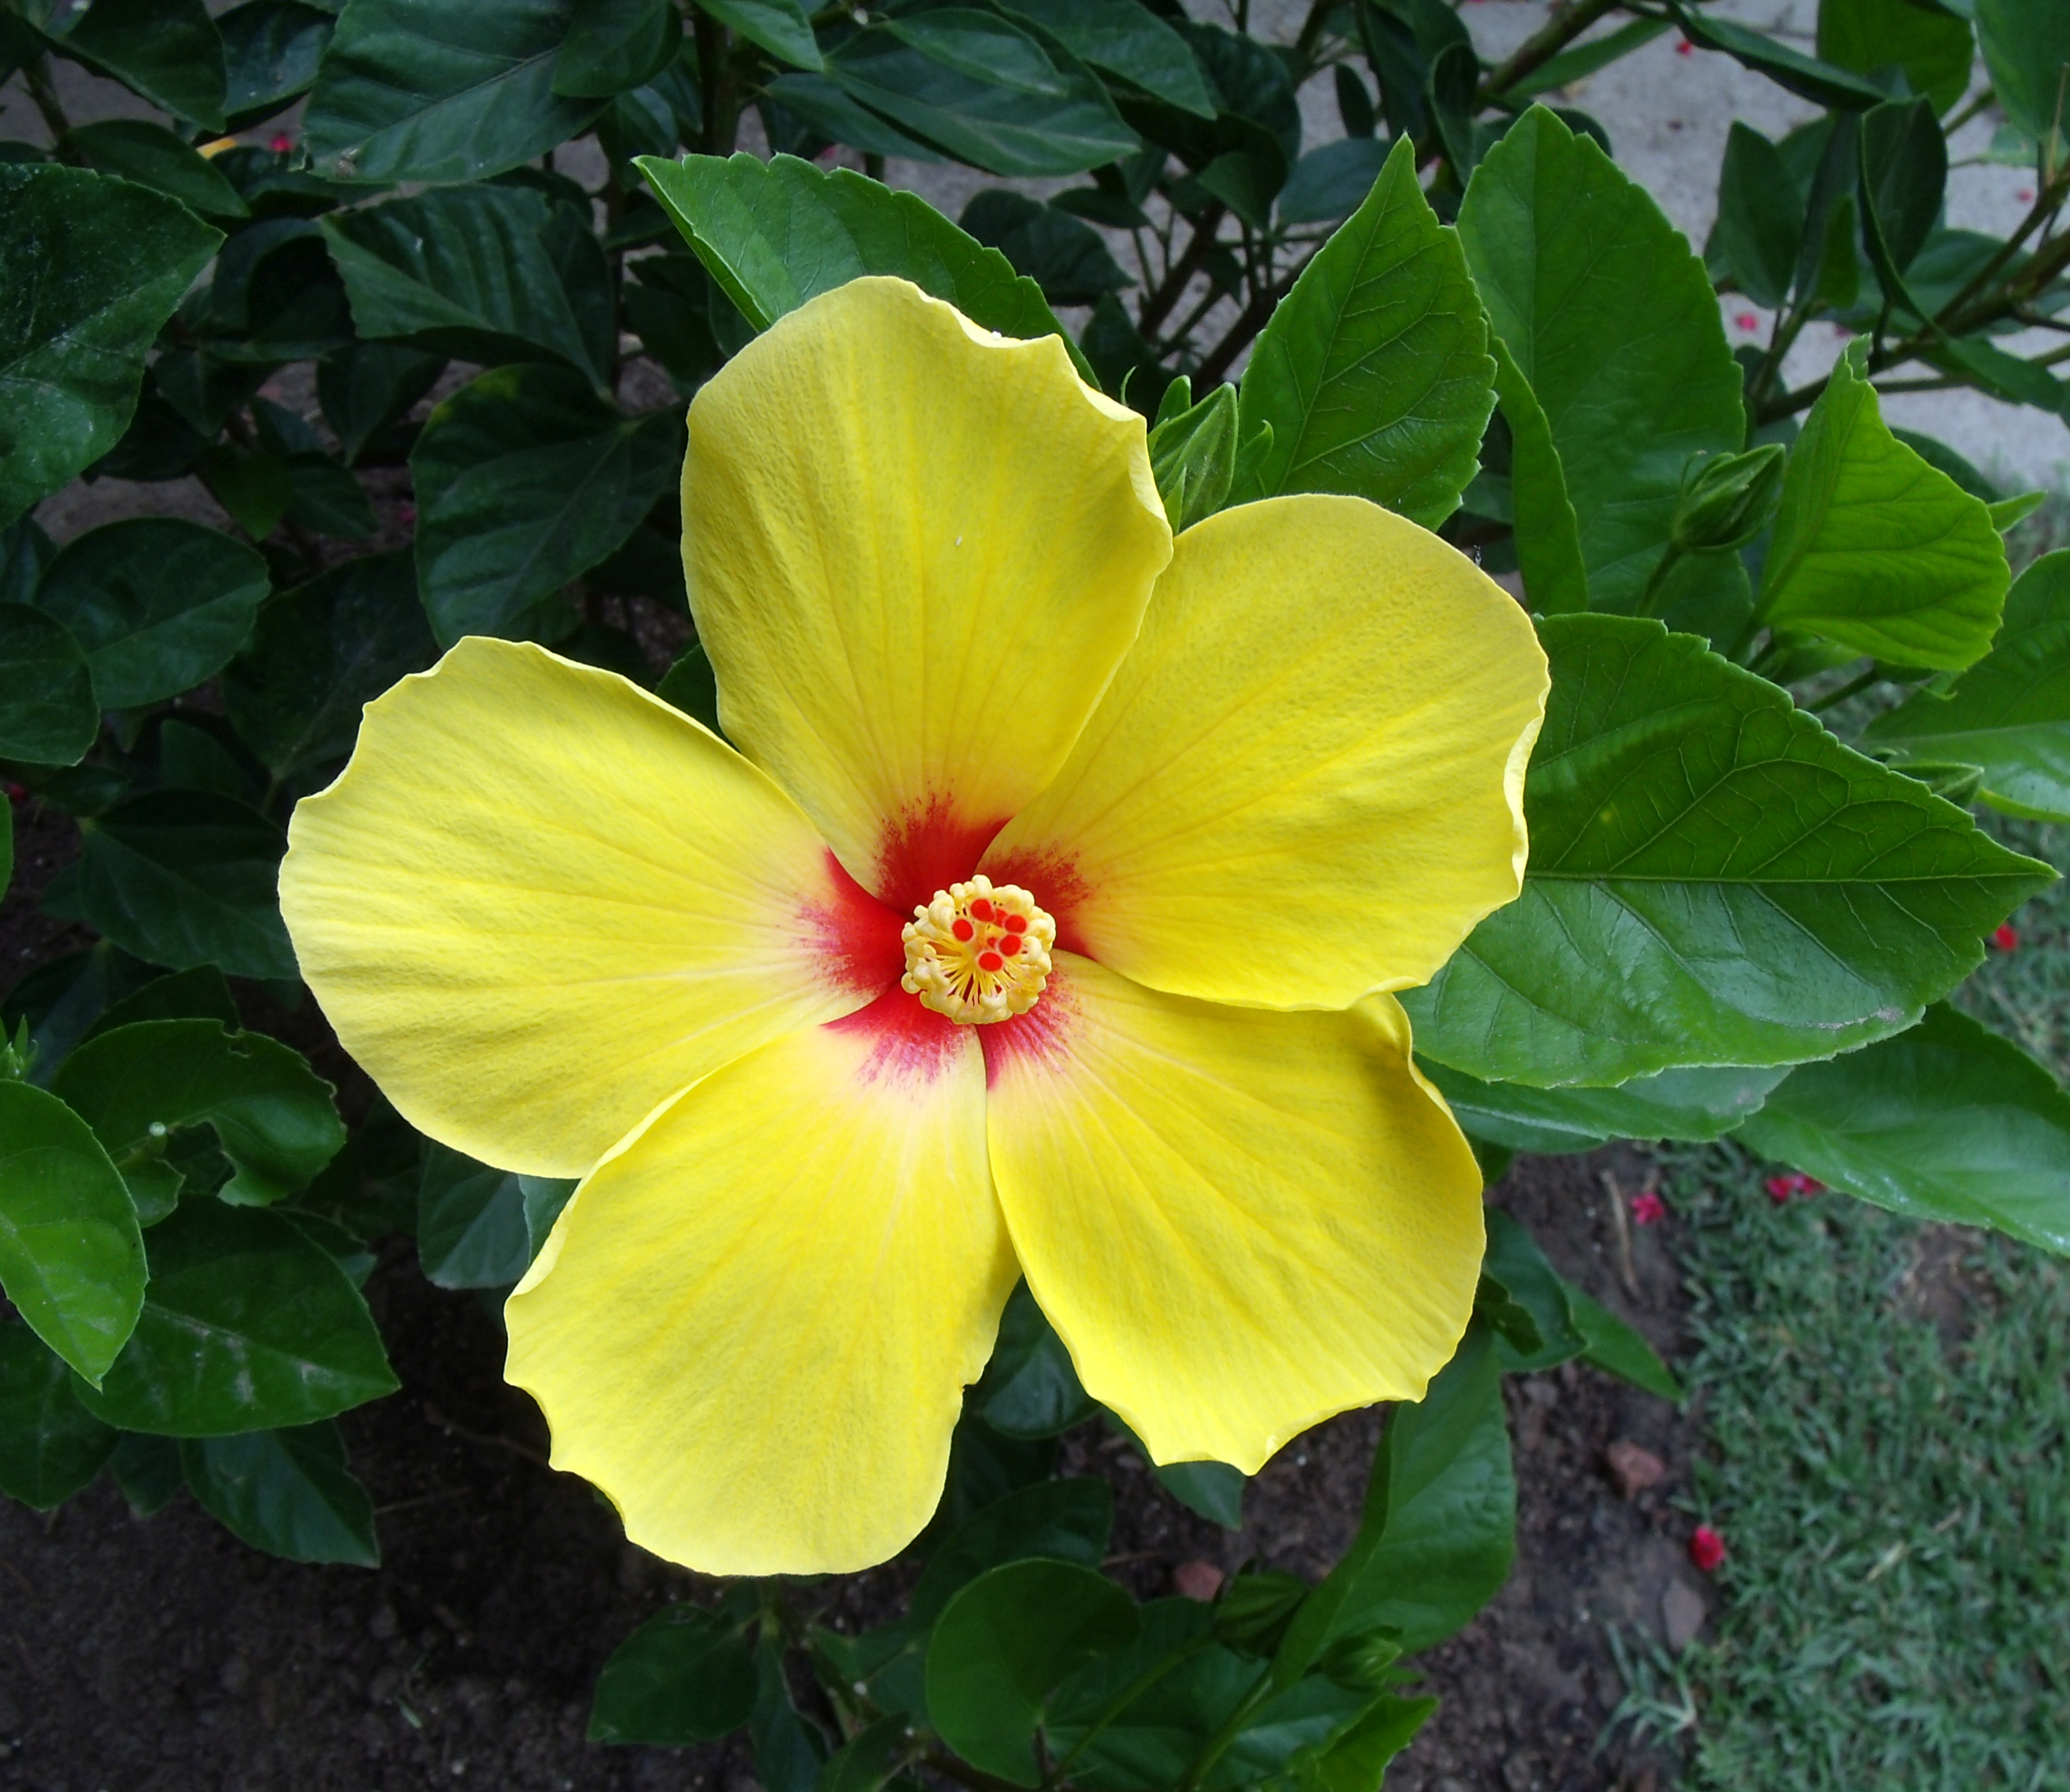 The Daily Hibiscus Daily Photographs Of Hibiscus Flowers In My